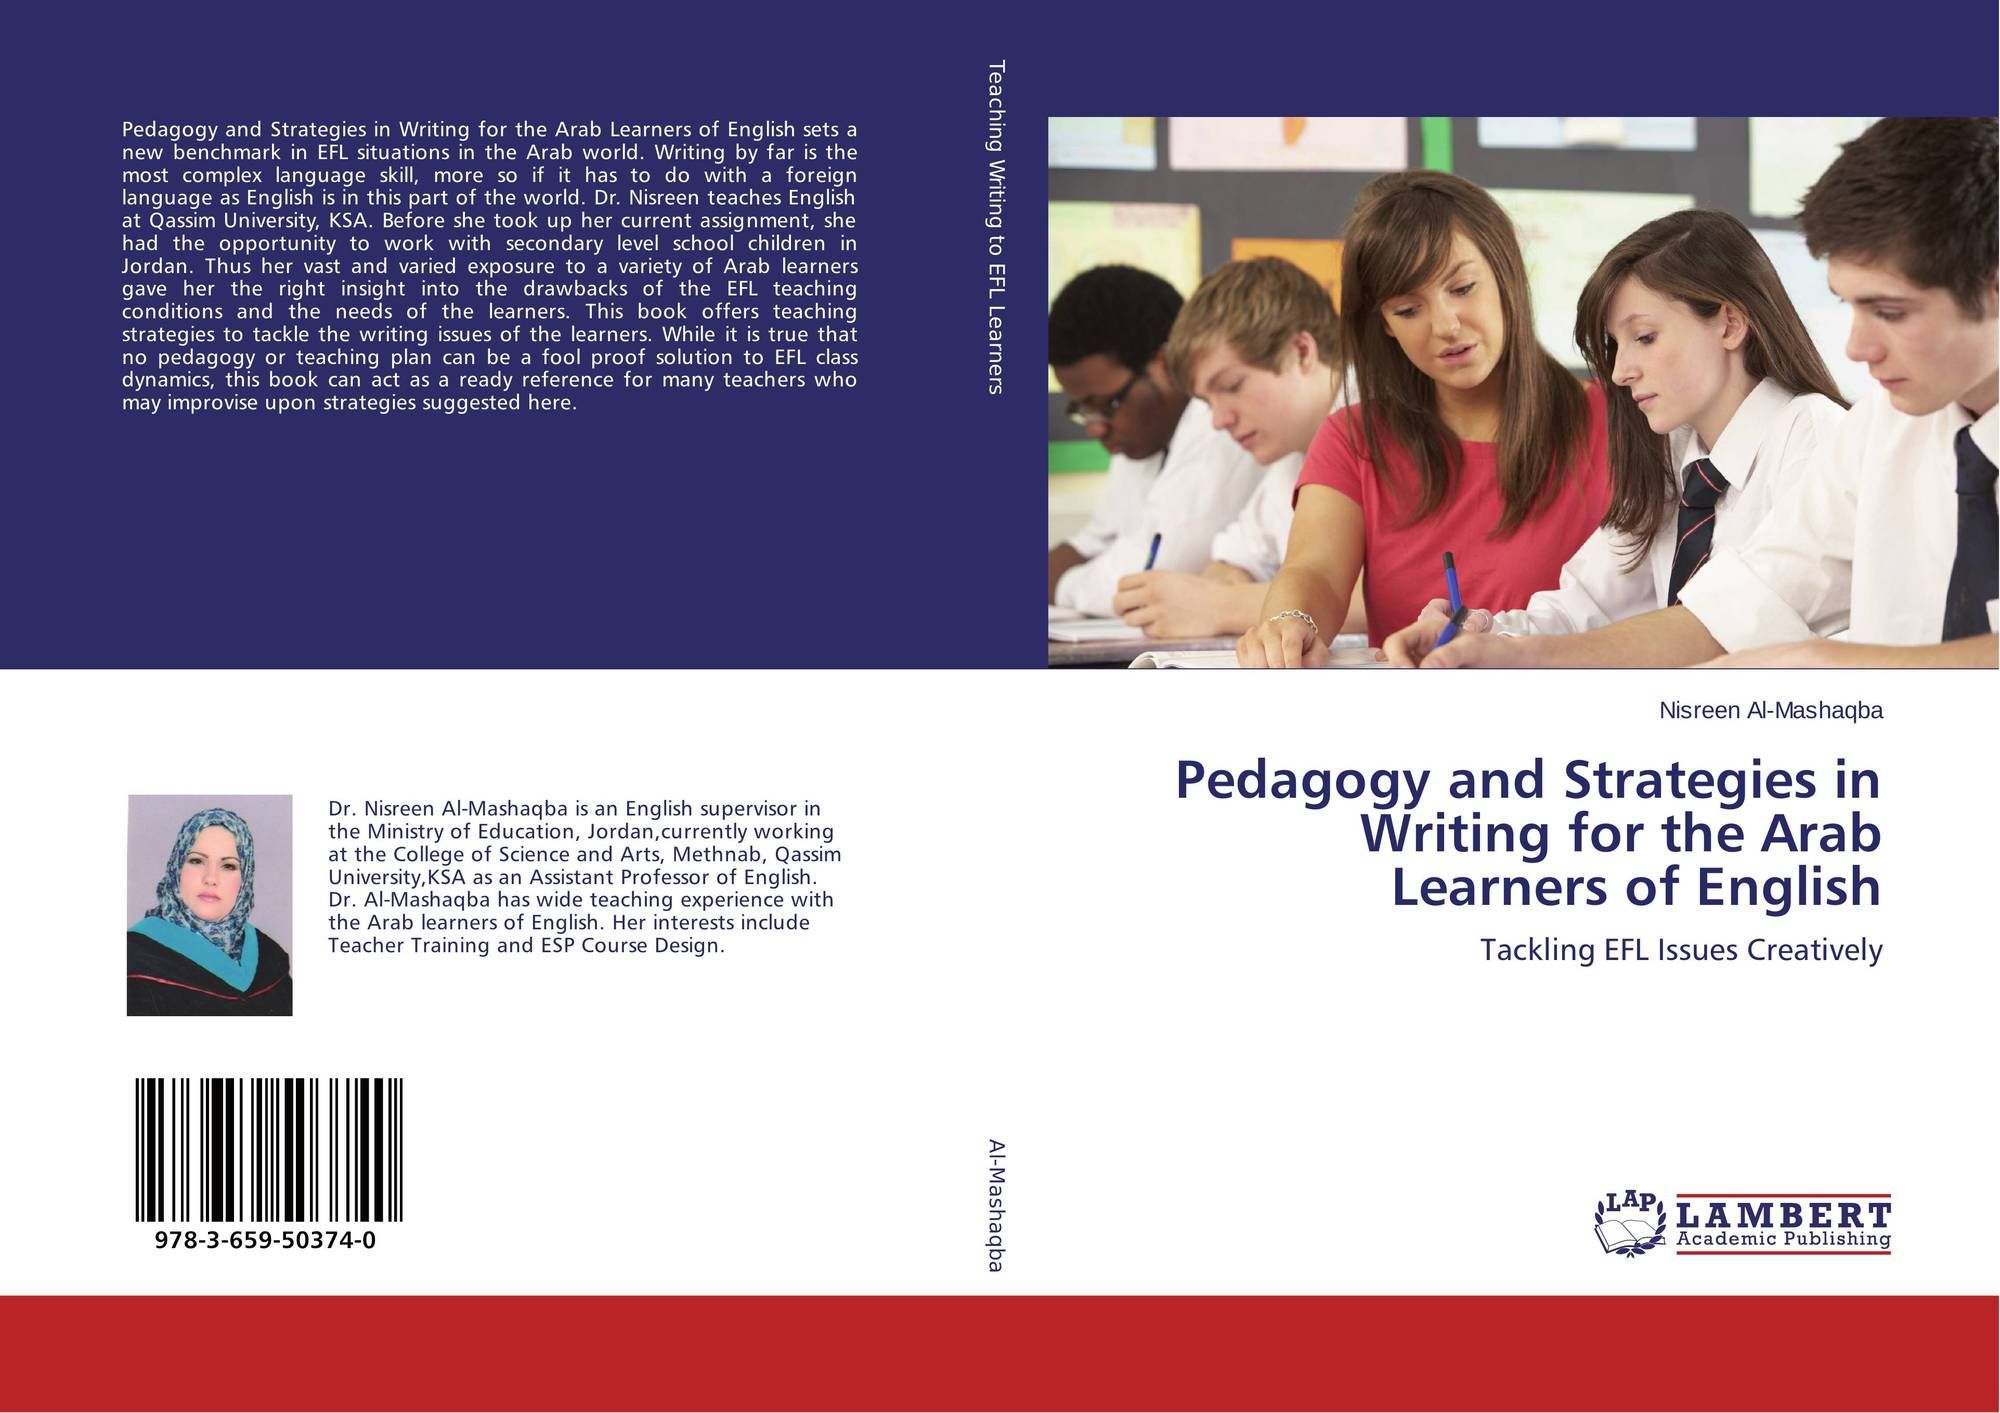 Pedagogy and Strategies in Writing for the Arab Learners of